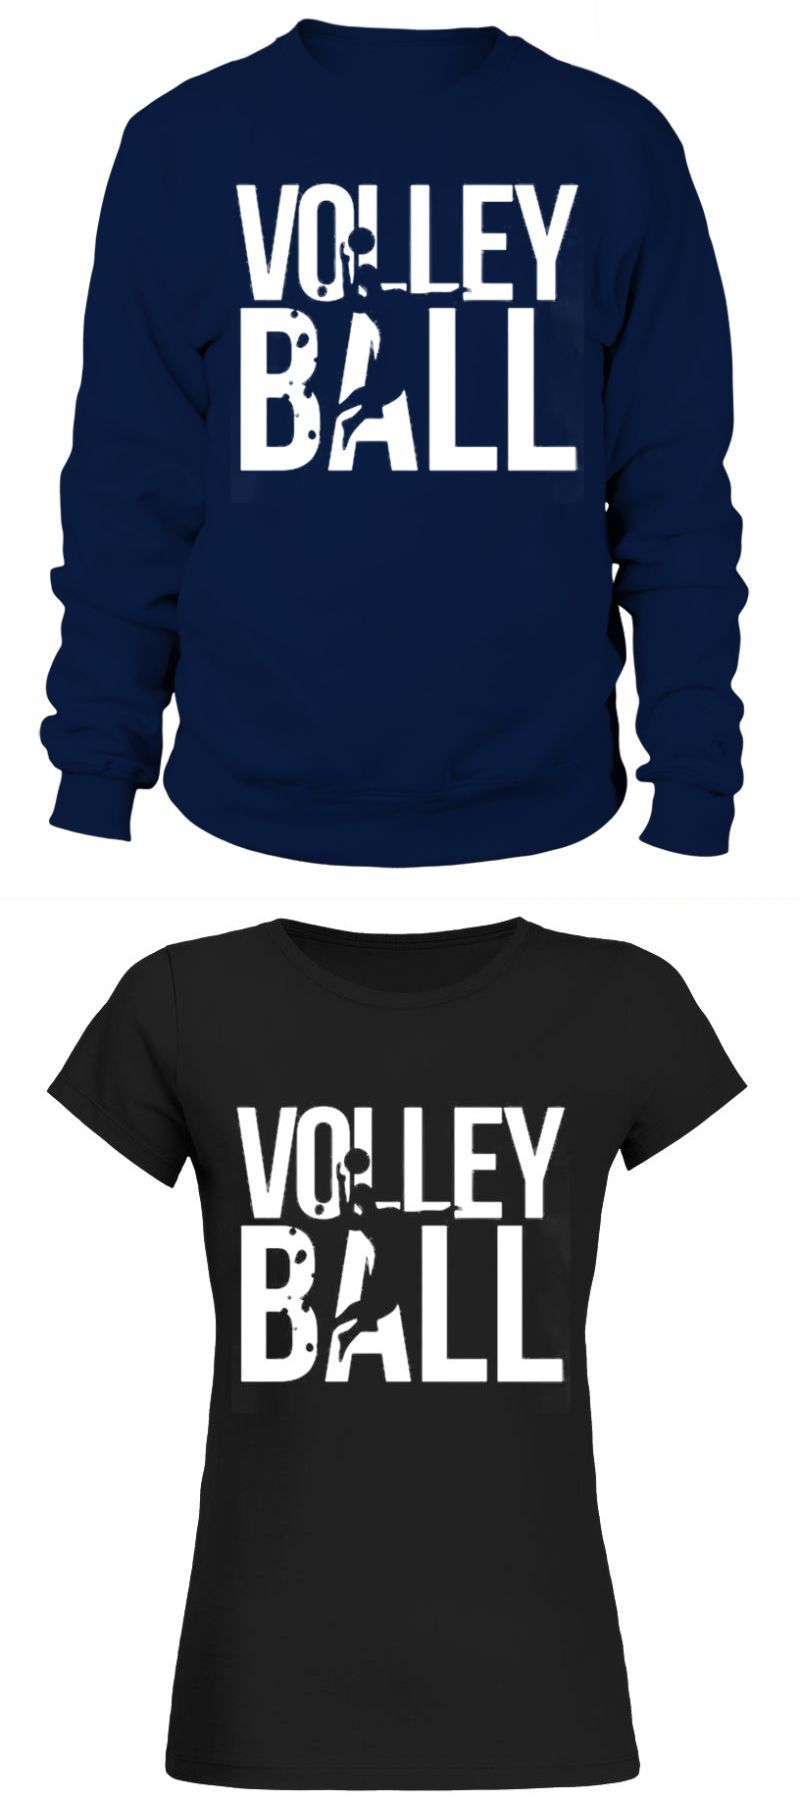 Volleyball Volley Love Team Beach Player Tshirt Funny Volleyball T Shirt Sayings Volleyball Voll T Shirts With Sayings Volleyball Tshirts Shirts With Sayings